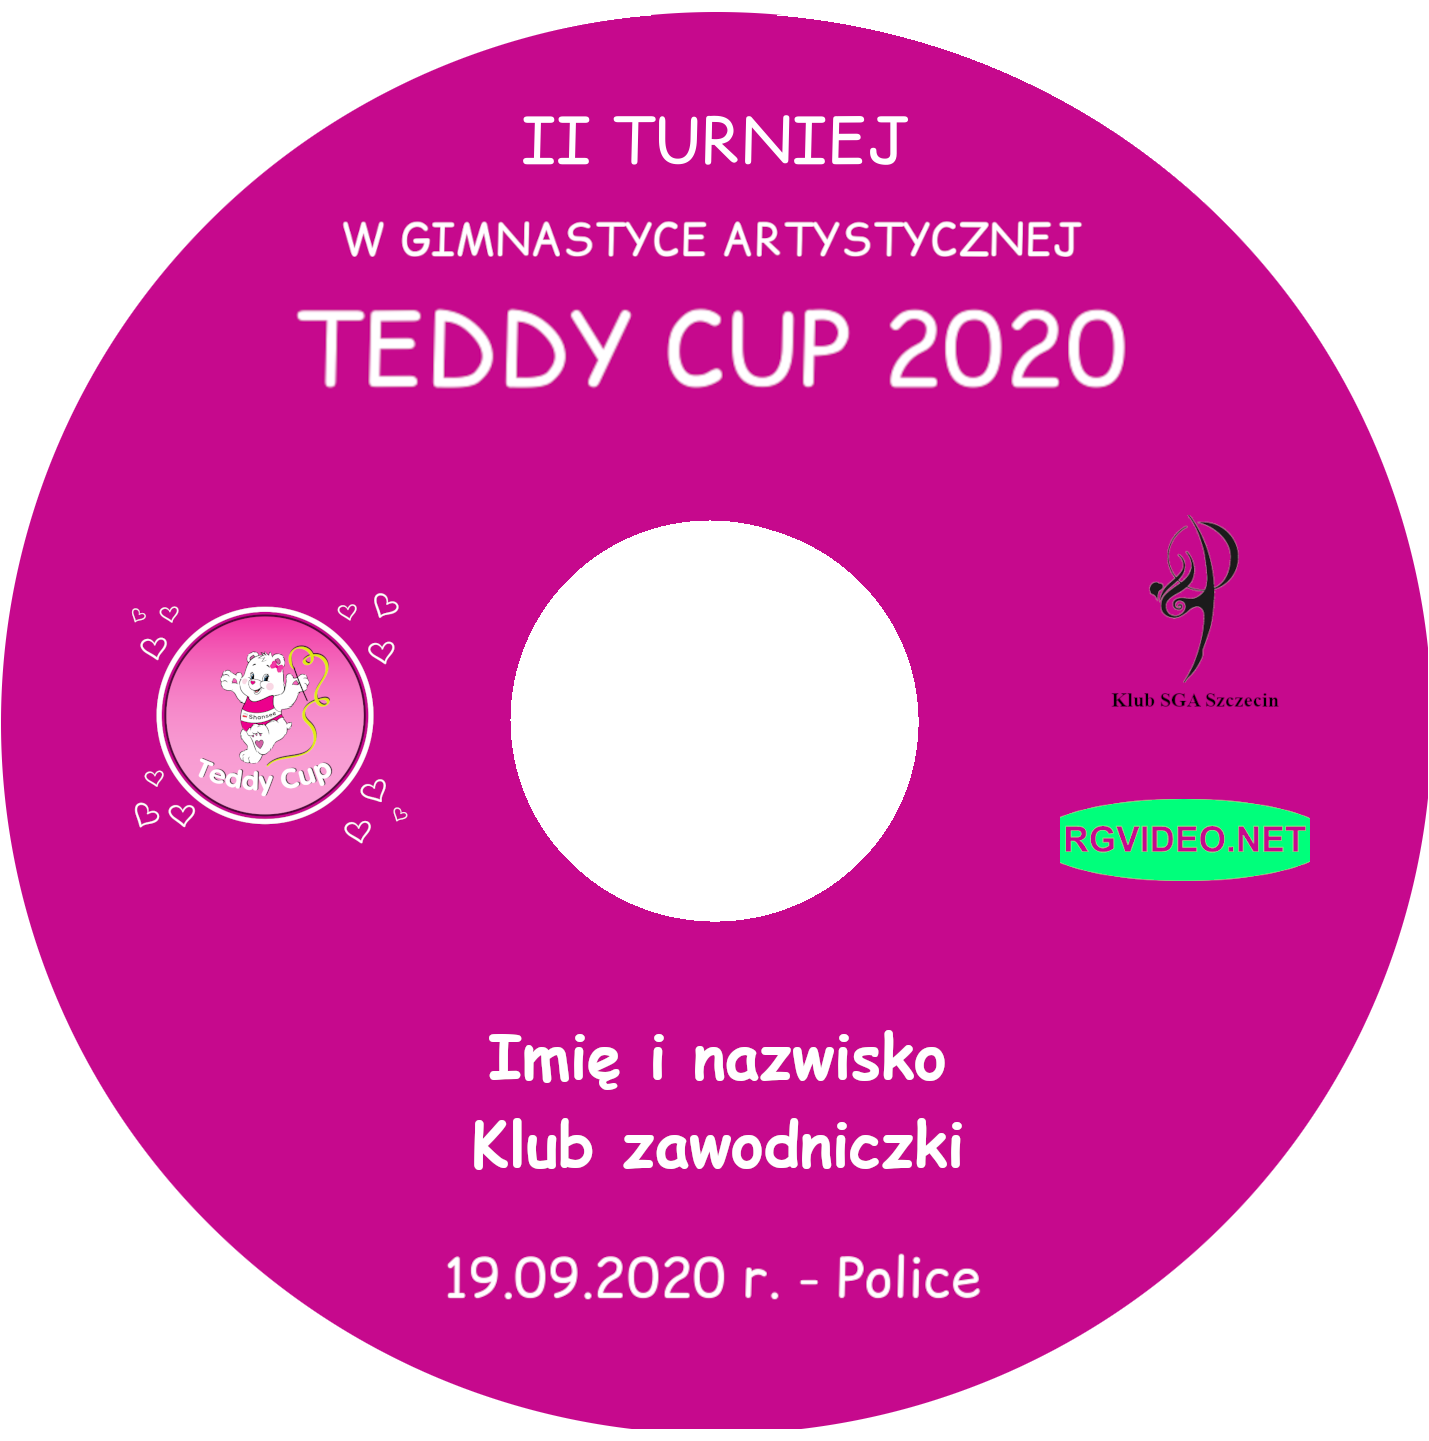 NAGRANIE VIDEO - TEDDY CUP 2020